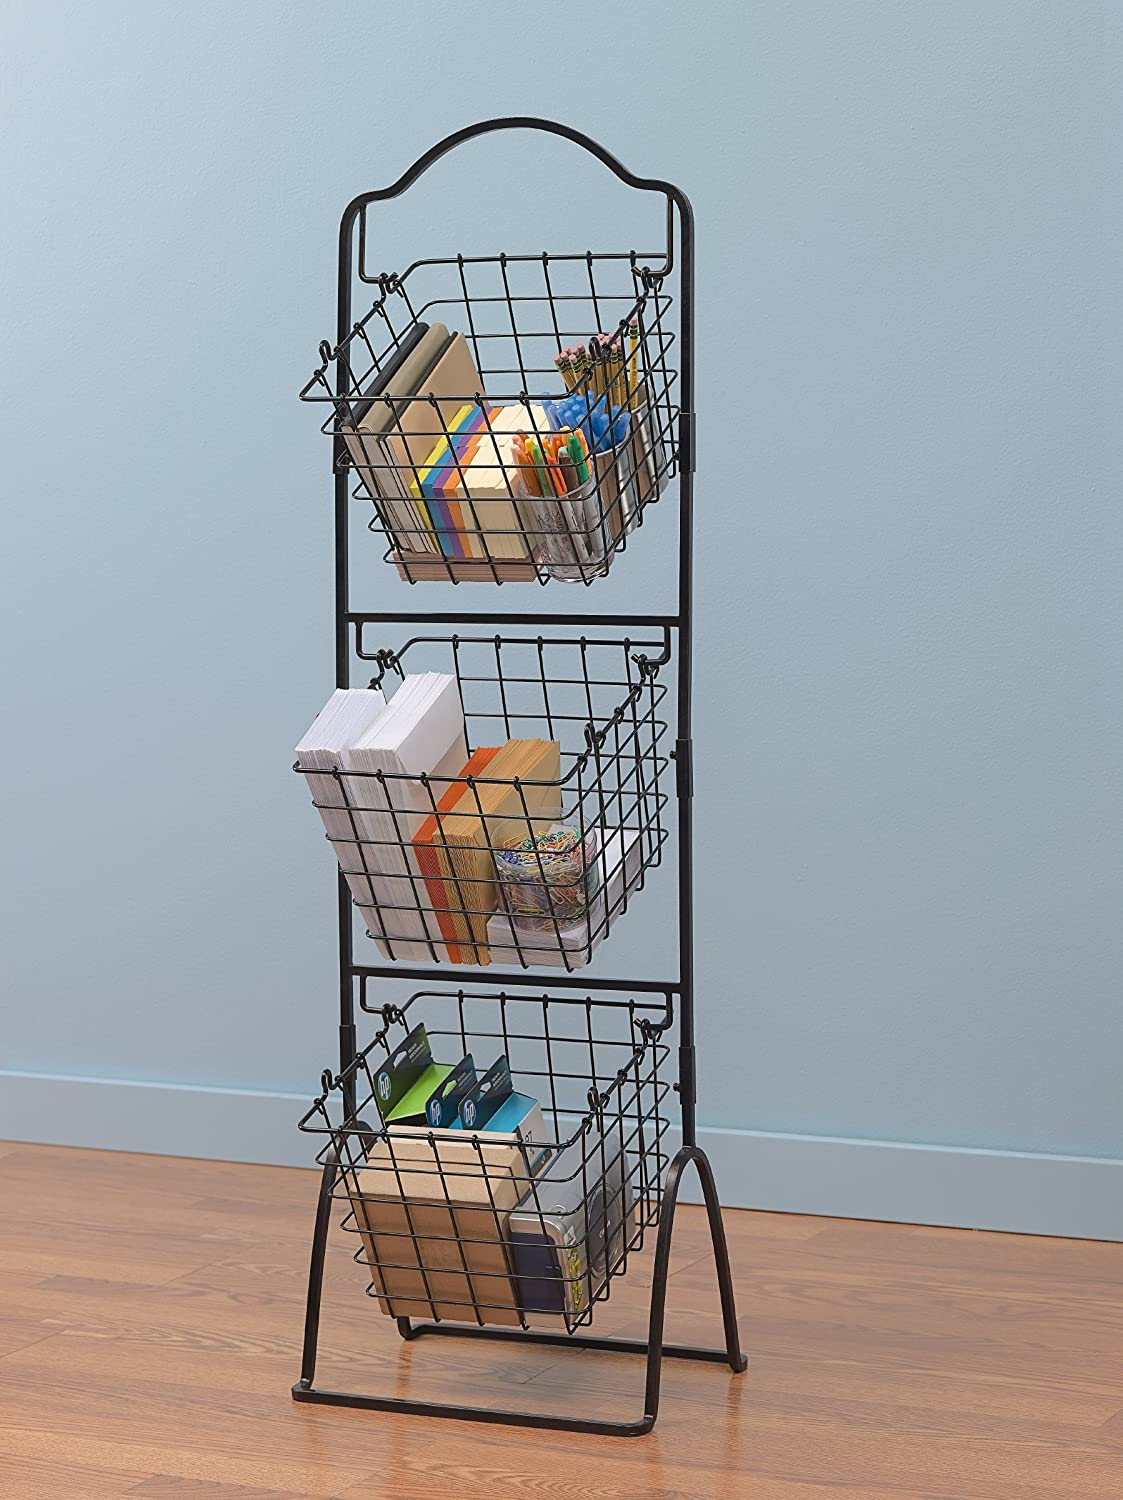 The Best Storage Container Sets (& Baskets) For Your Bathroom: Reviews & Buying Guide 16